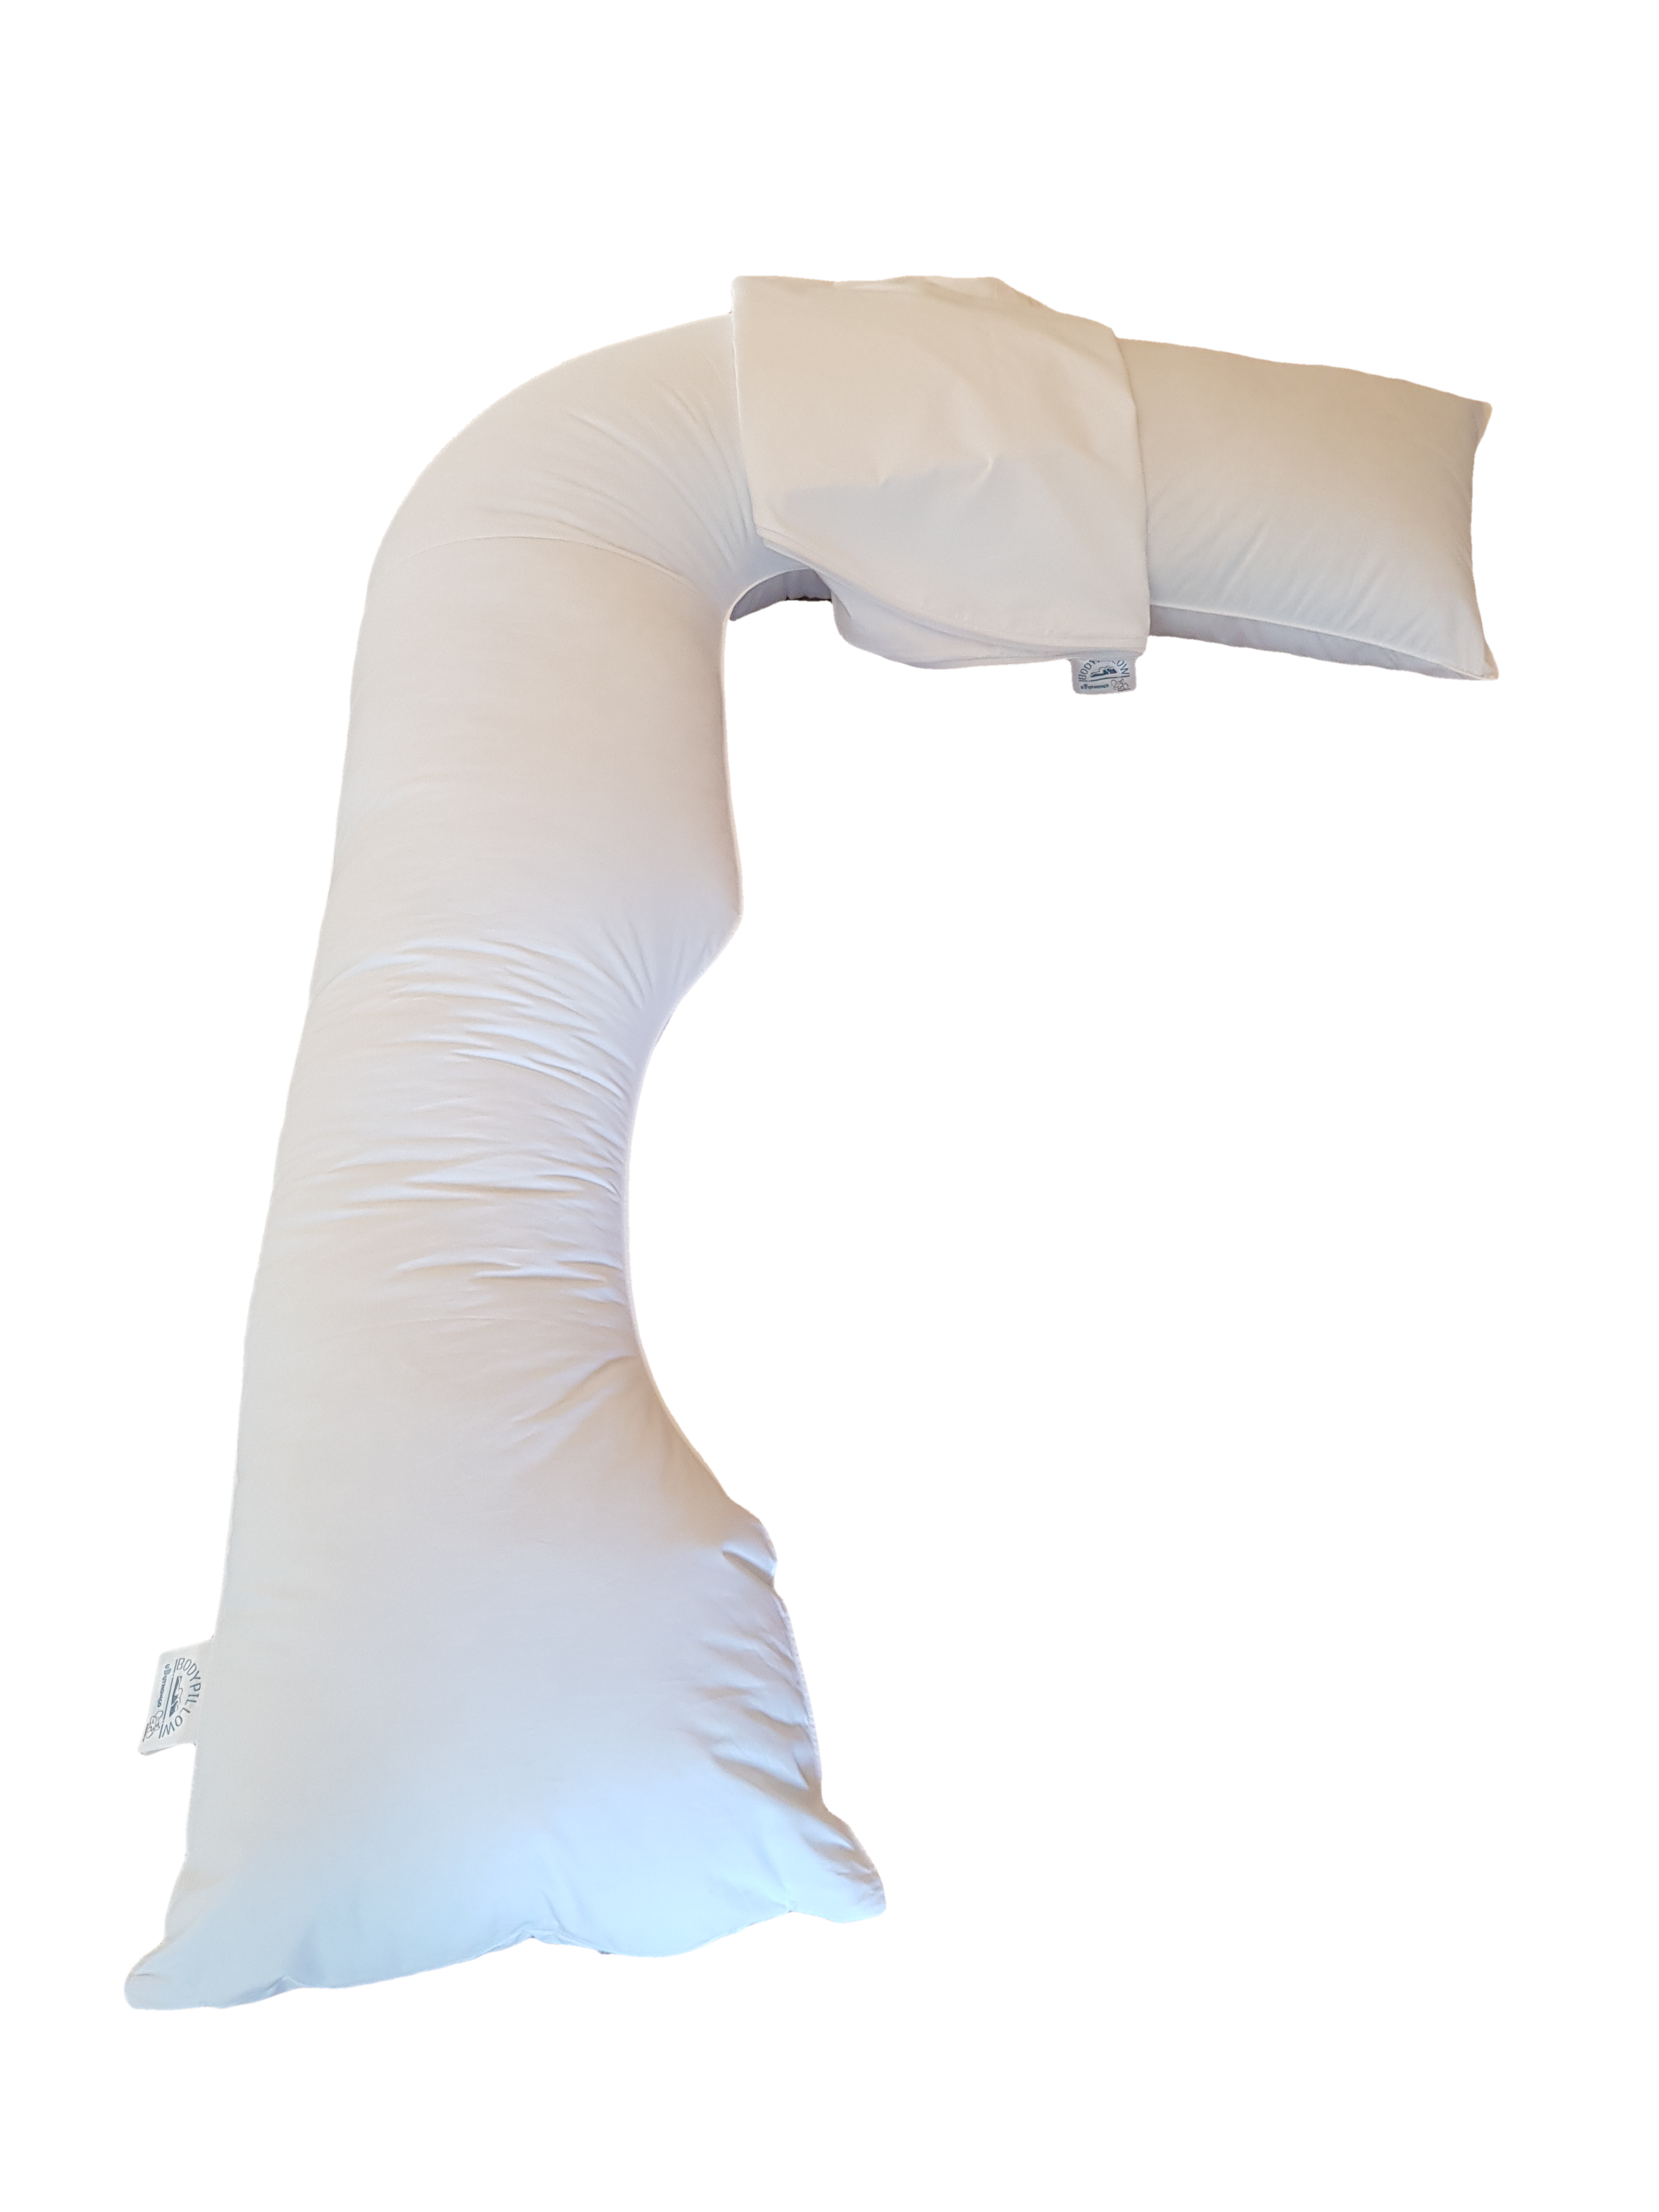 [ Snugg'L - R1499 ] Another of the larger Bodypillows in the range with an overall length of over 2 meters. It can provide full body support pre and postnatal.